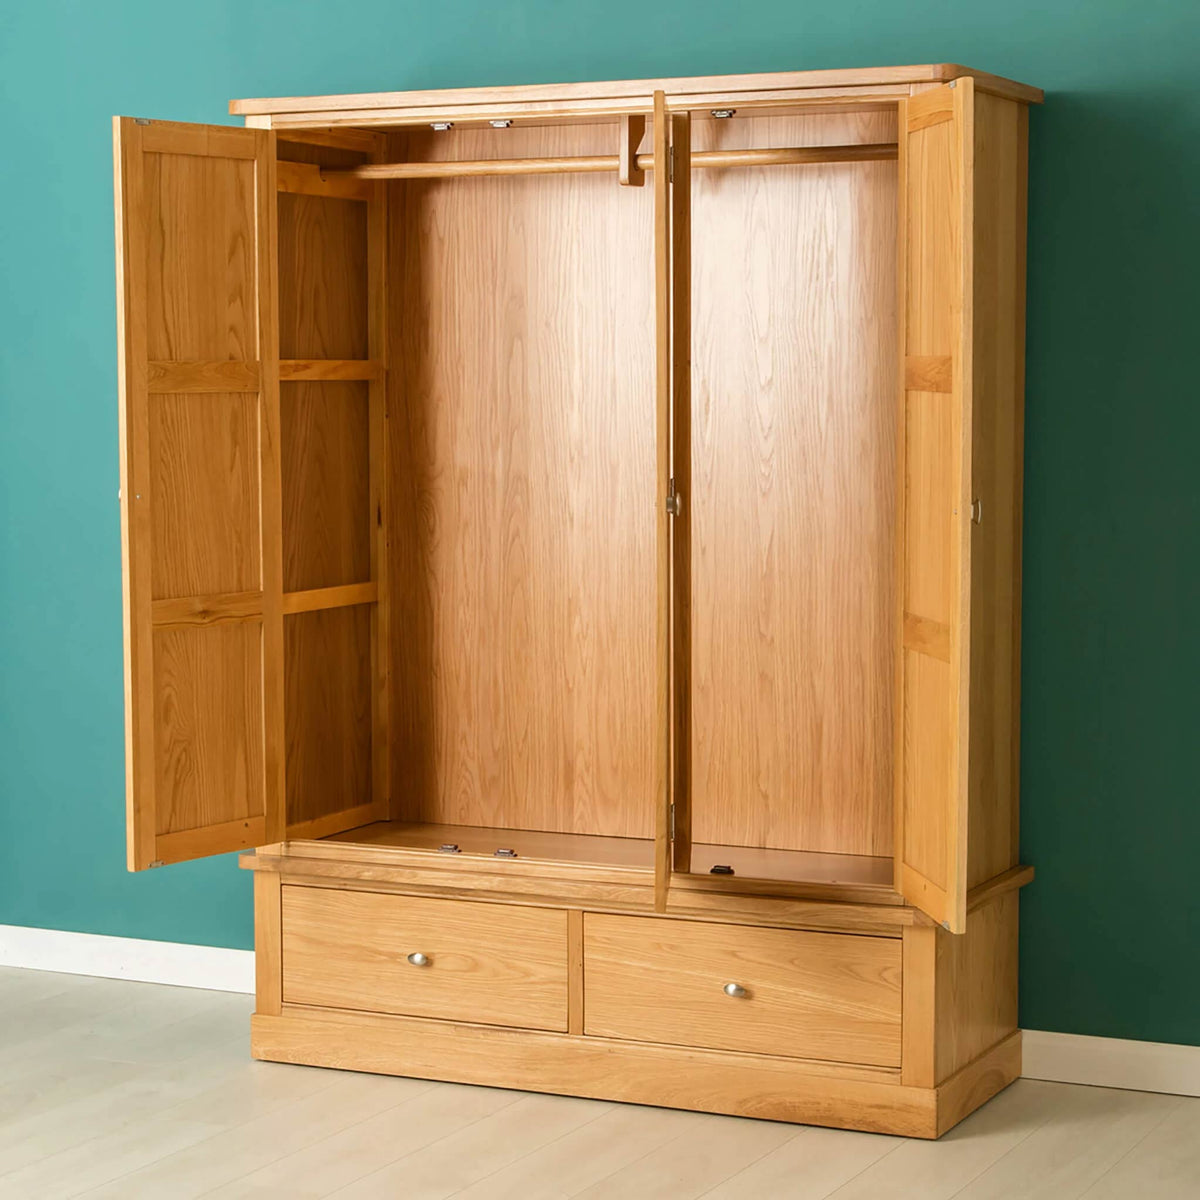 Hampshire Oak Triple Wardrobe - Lifestyle with doors open